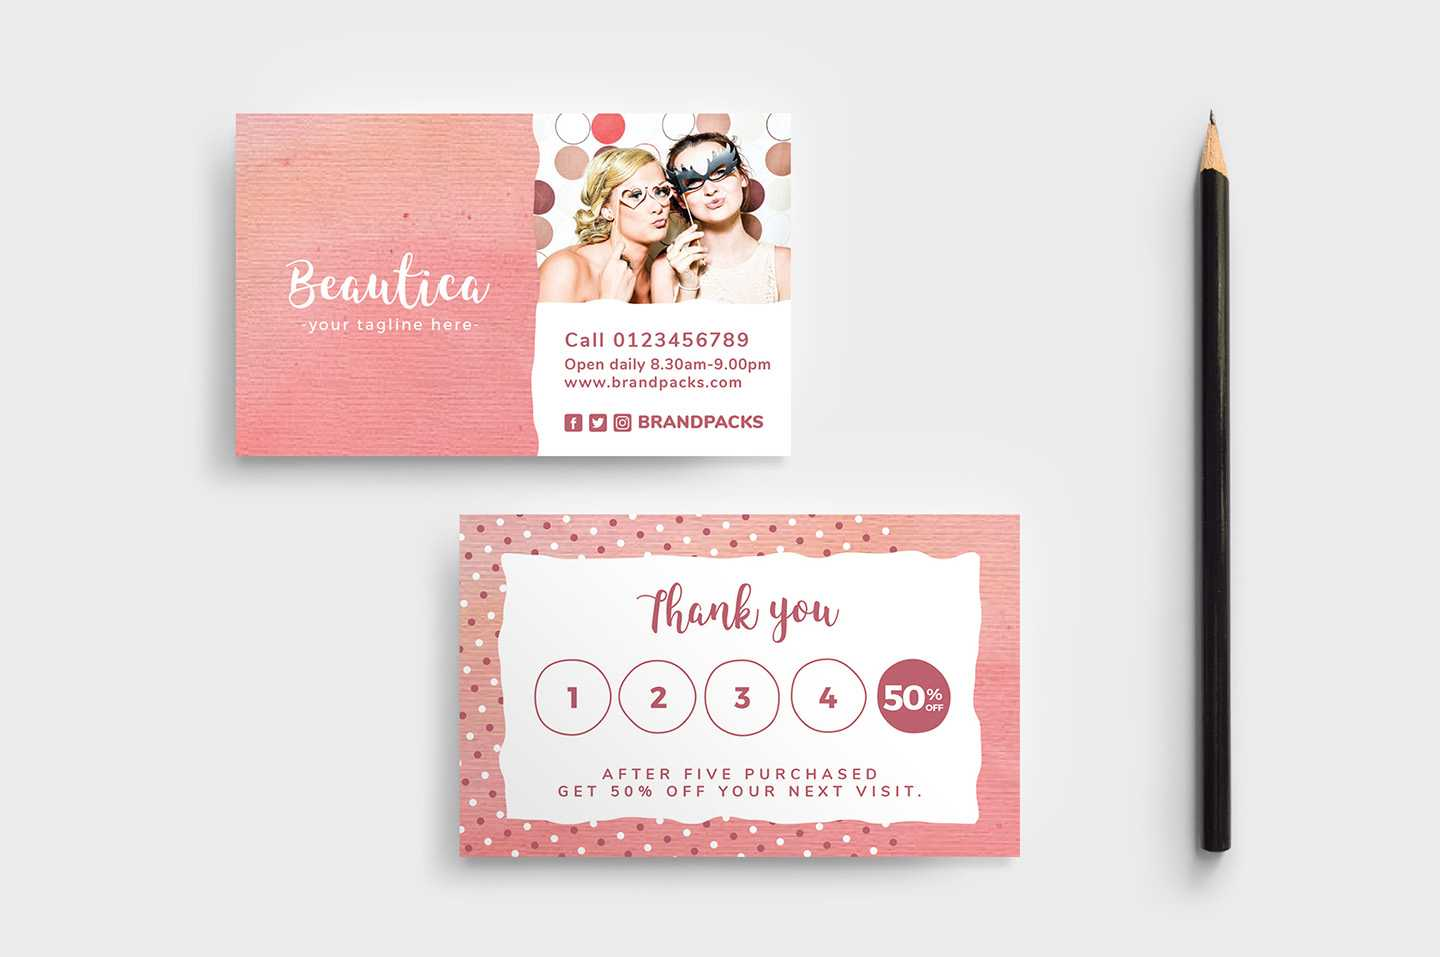 Free Loyalty Card Templates - Psd, Ai & Vector - Brandpacks Within Loyalty Card Design Template